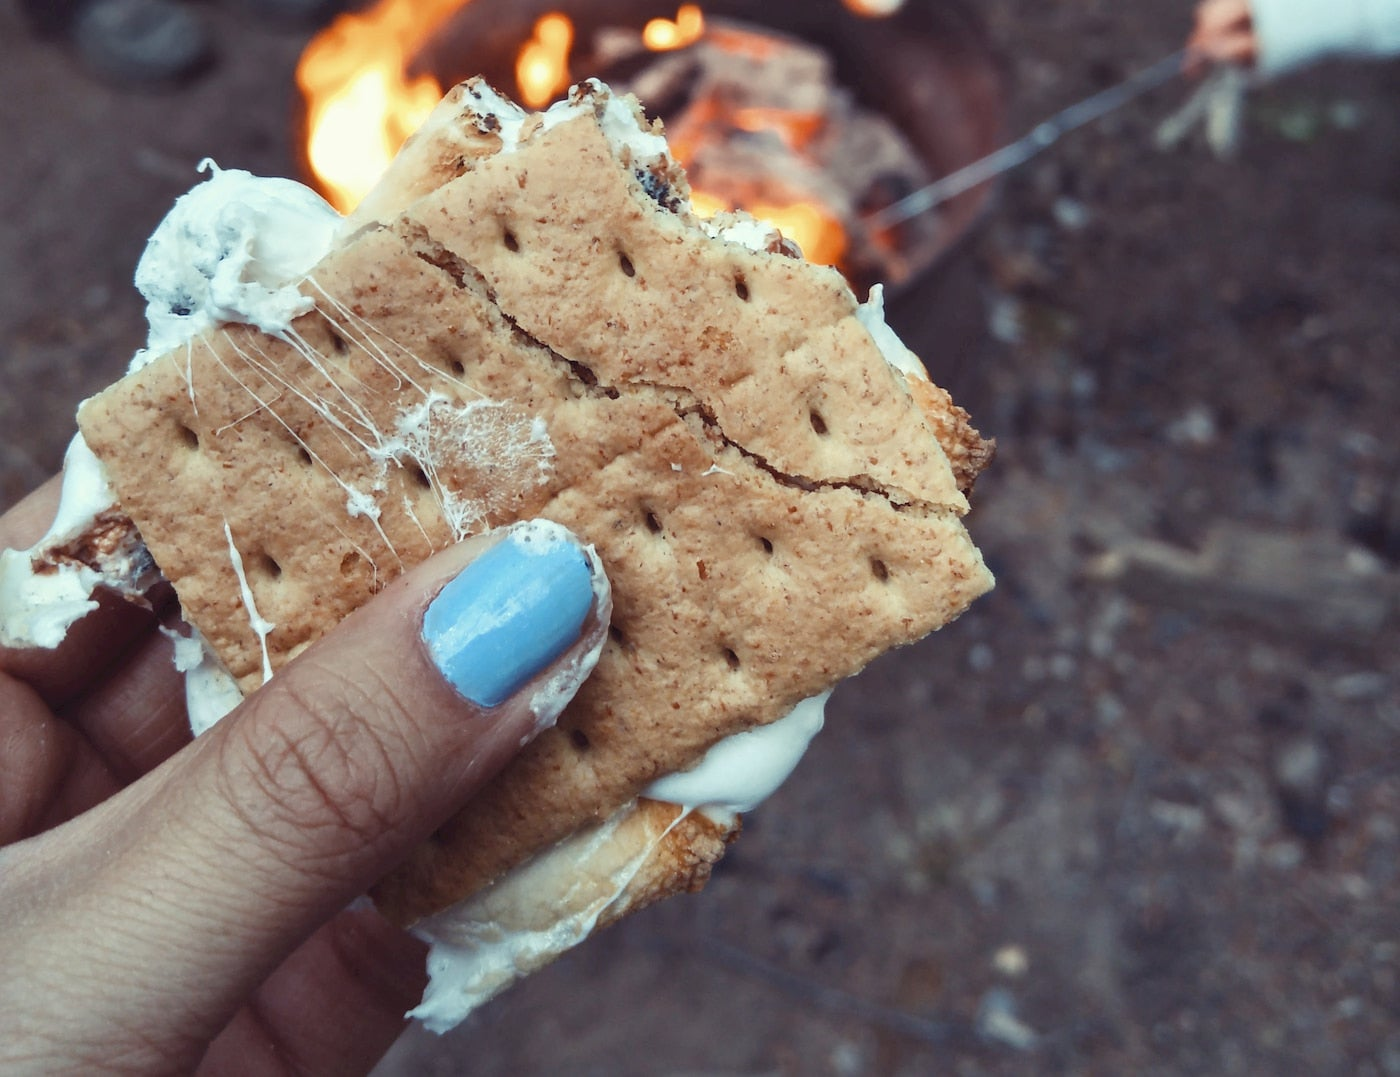 Women holding a s'more in front a a campfire.